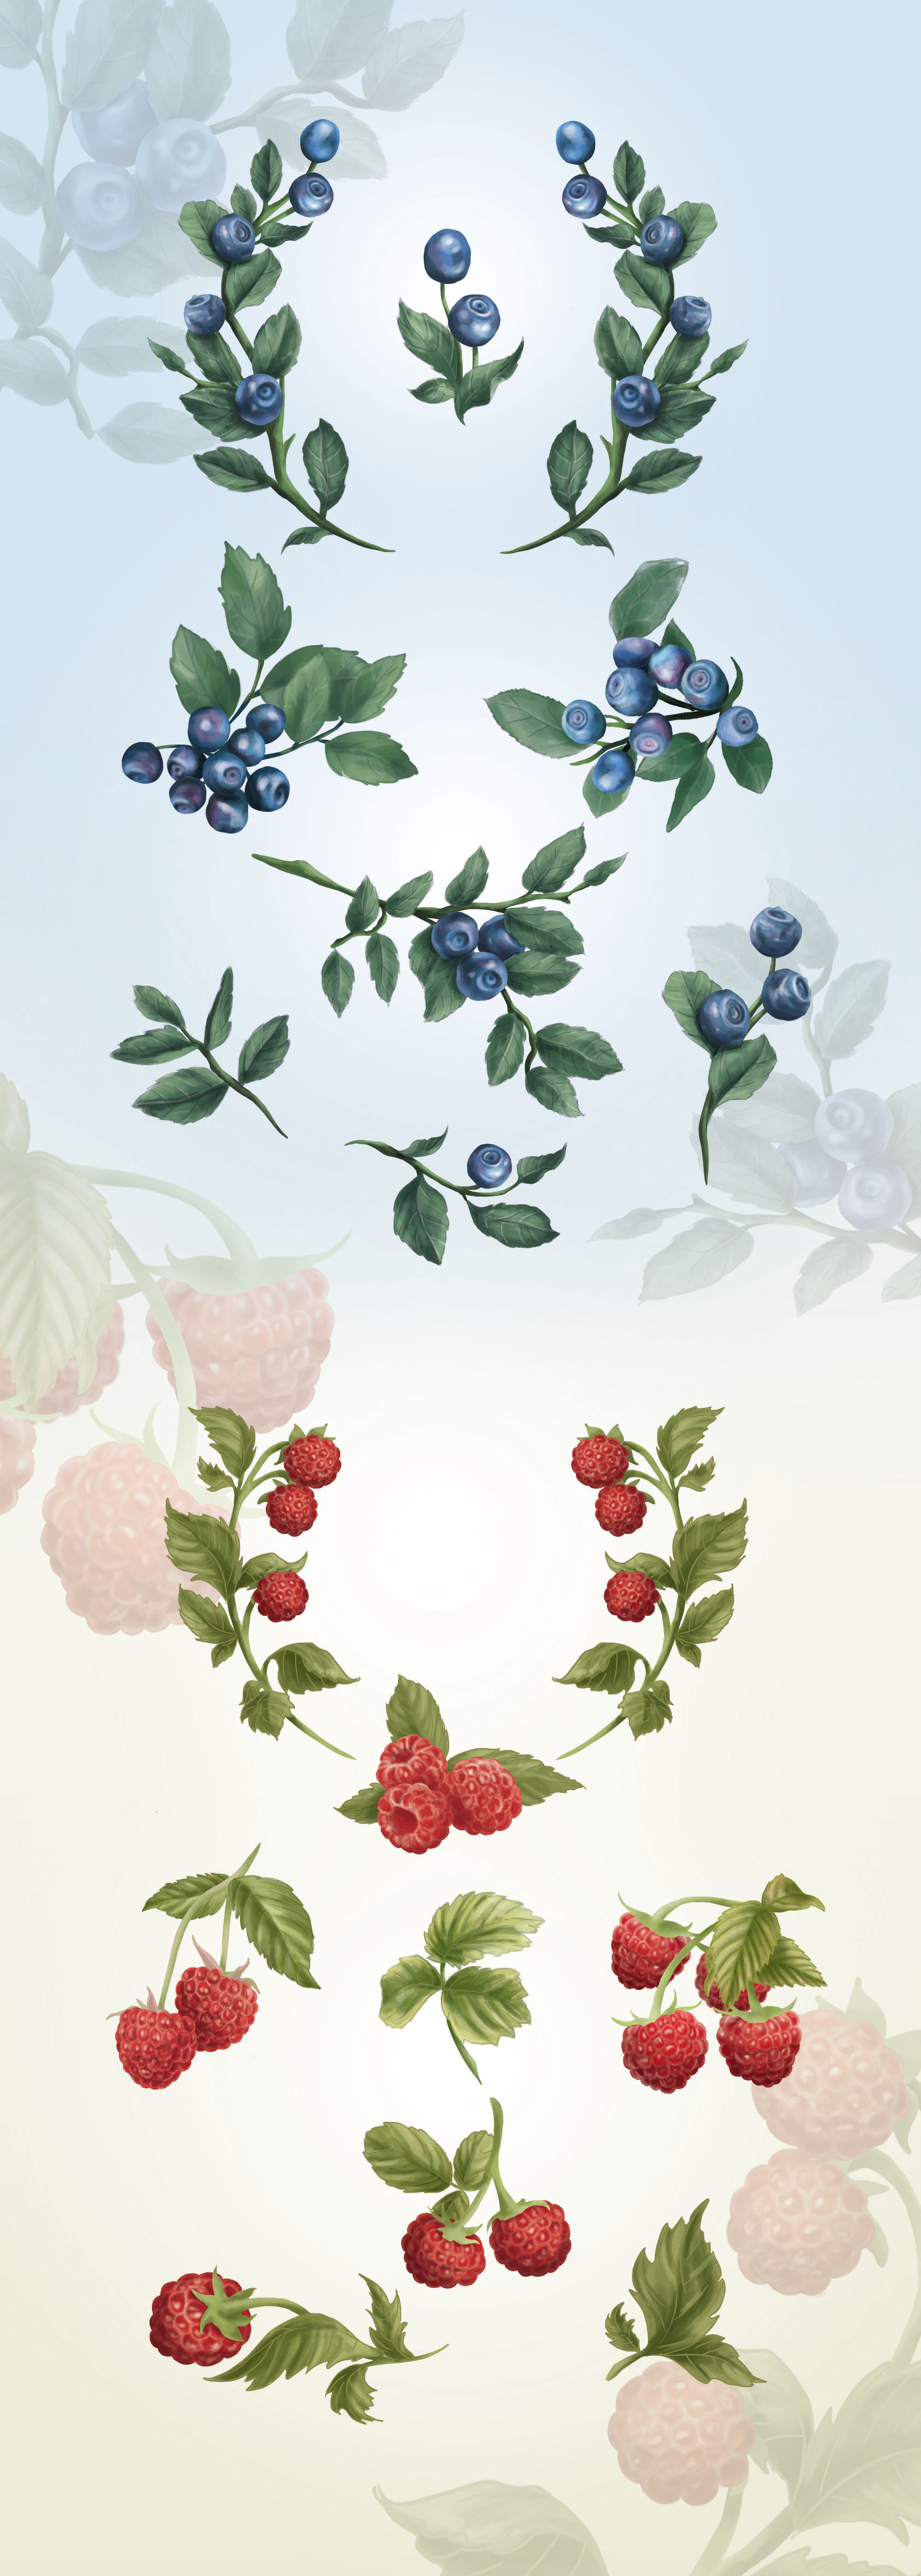 Berries Design Elements